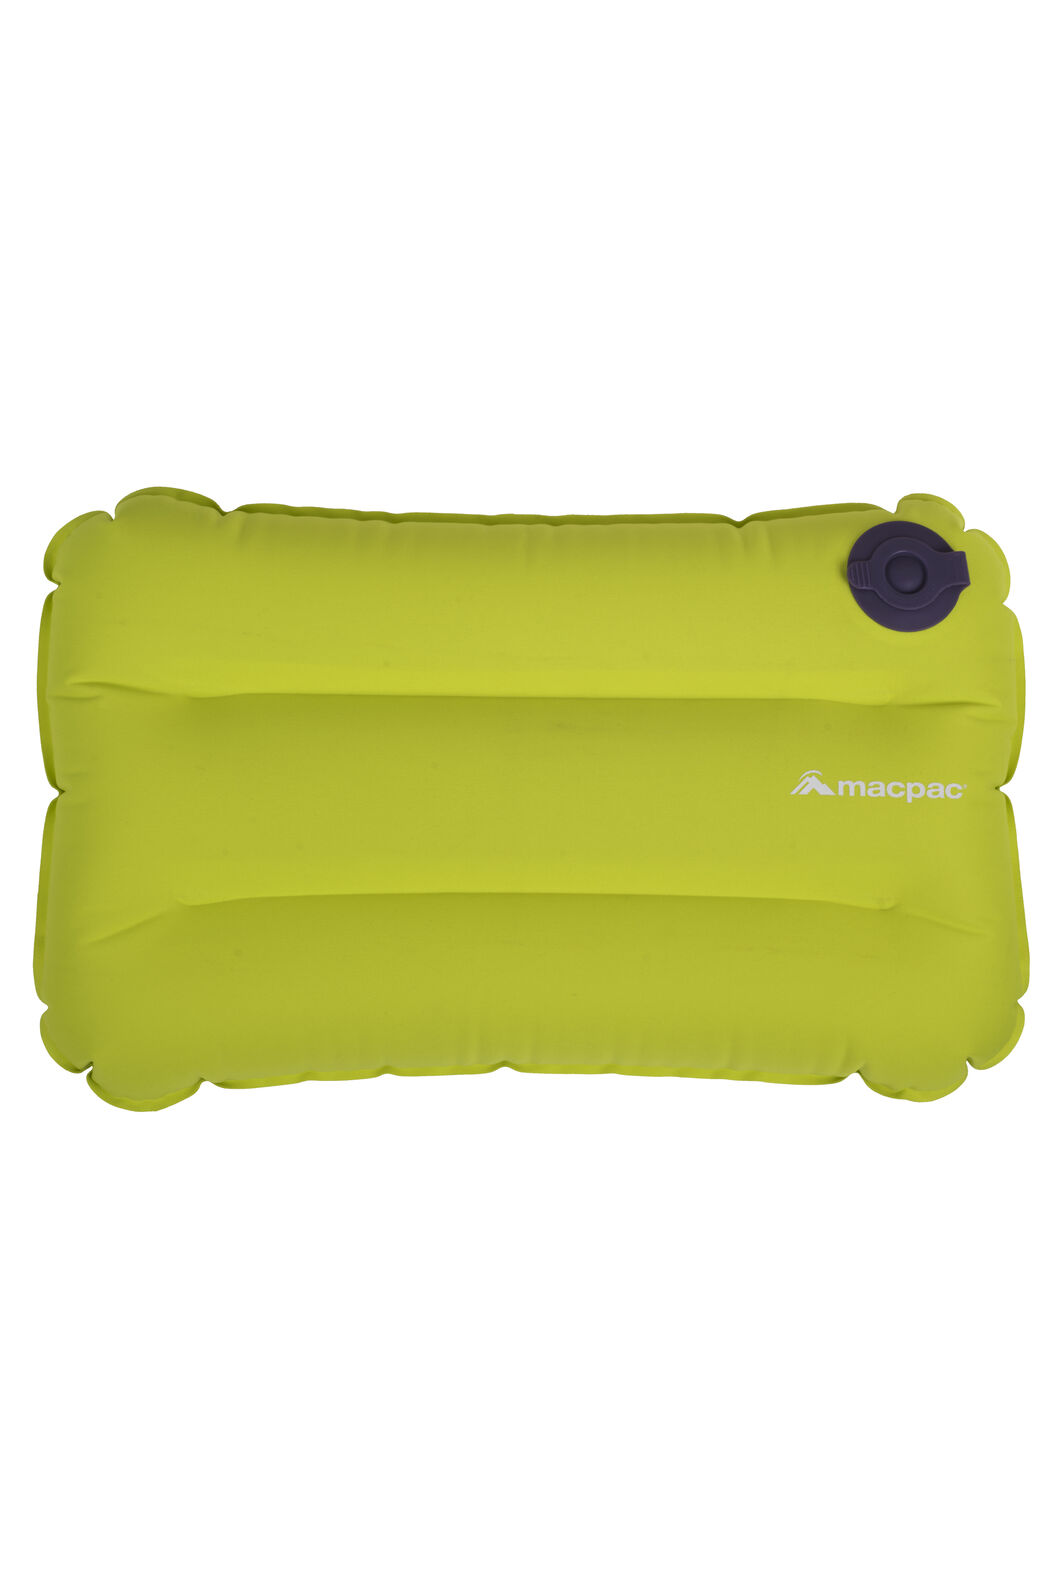 Macpac Inflatable Pillow, Green, hi-res